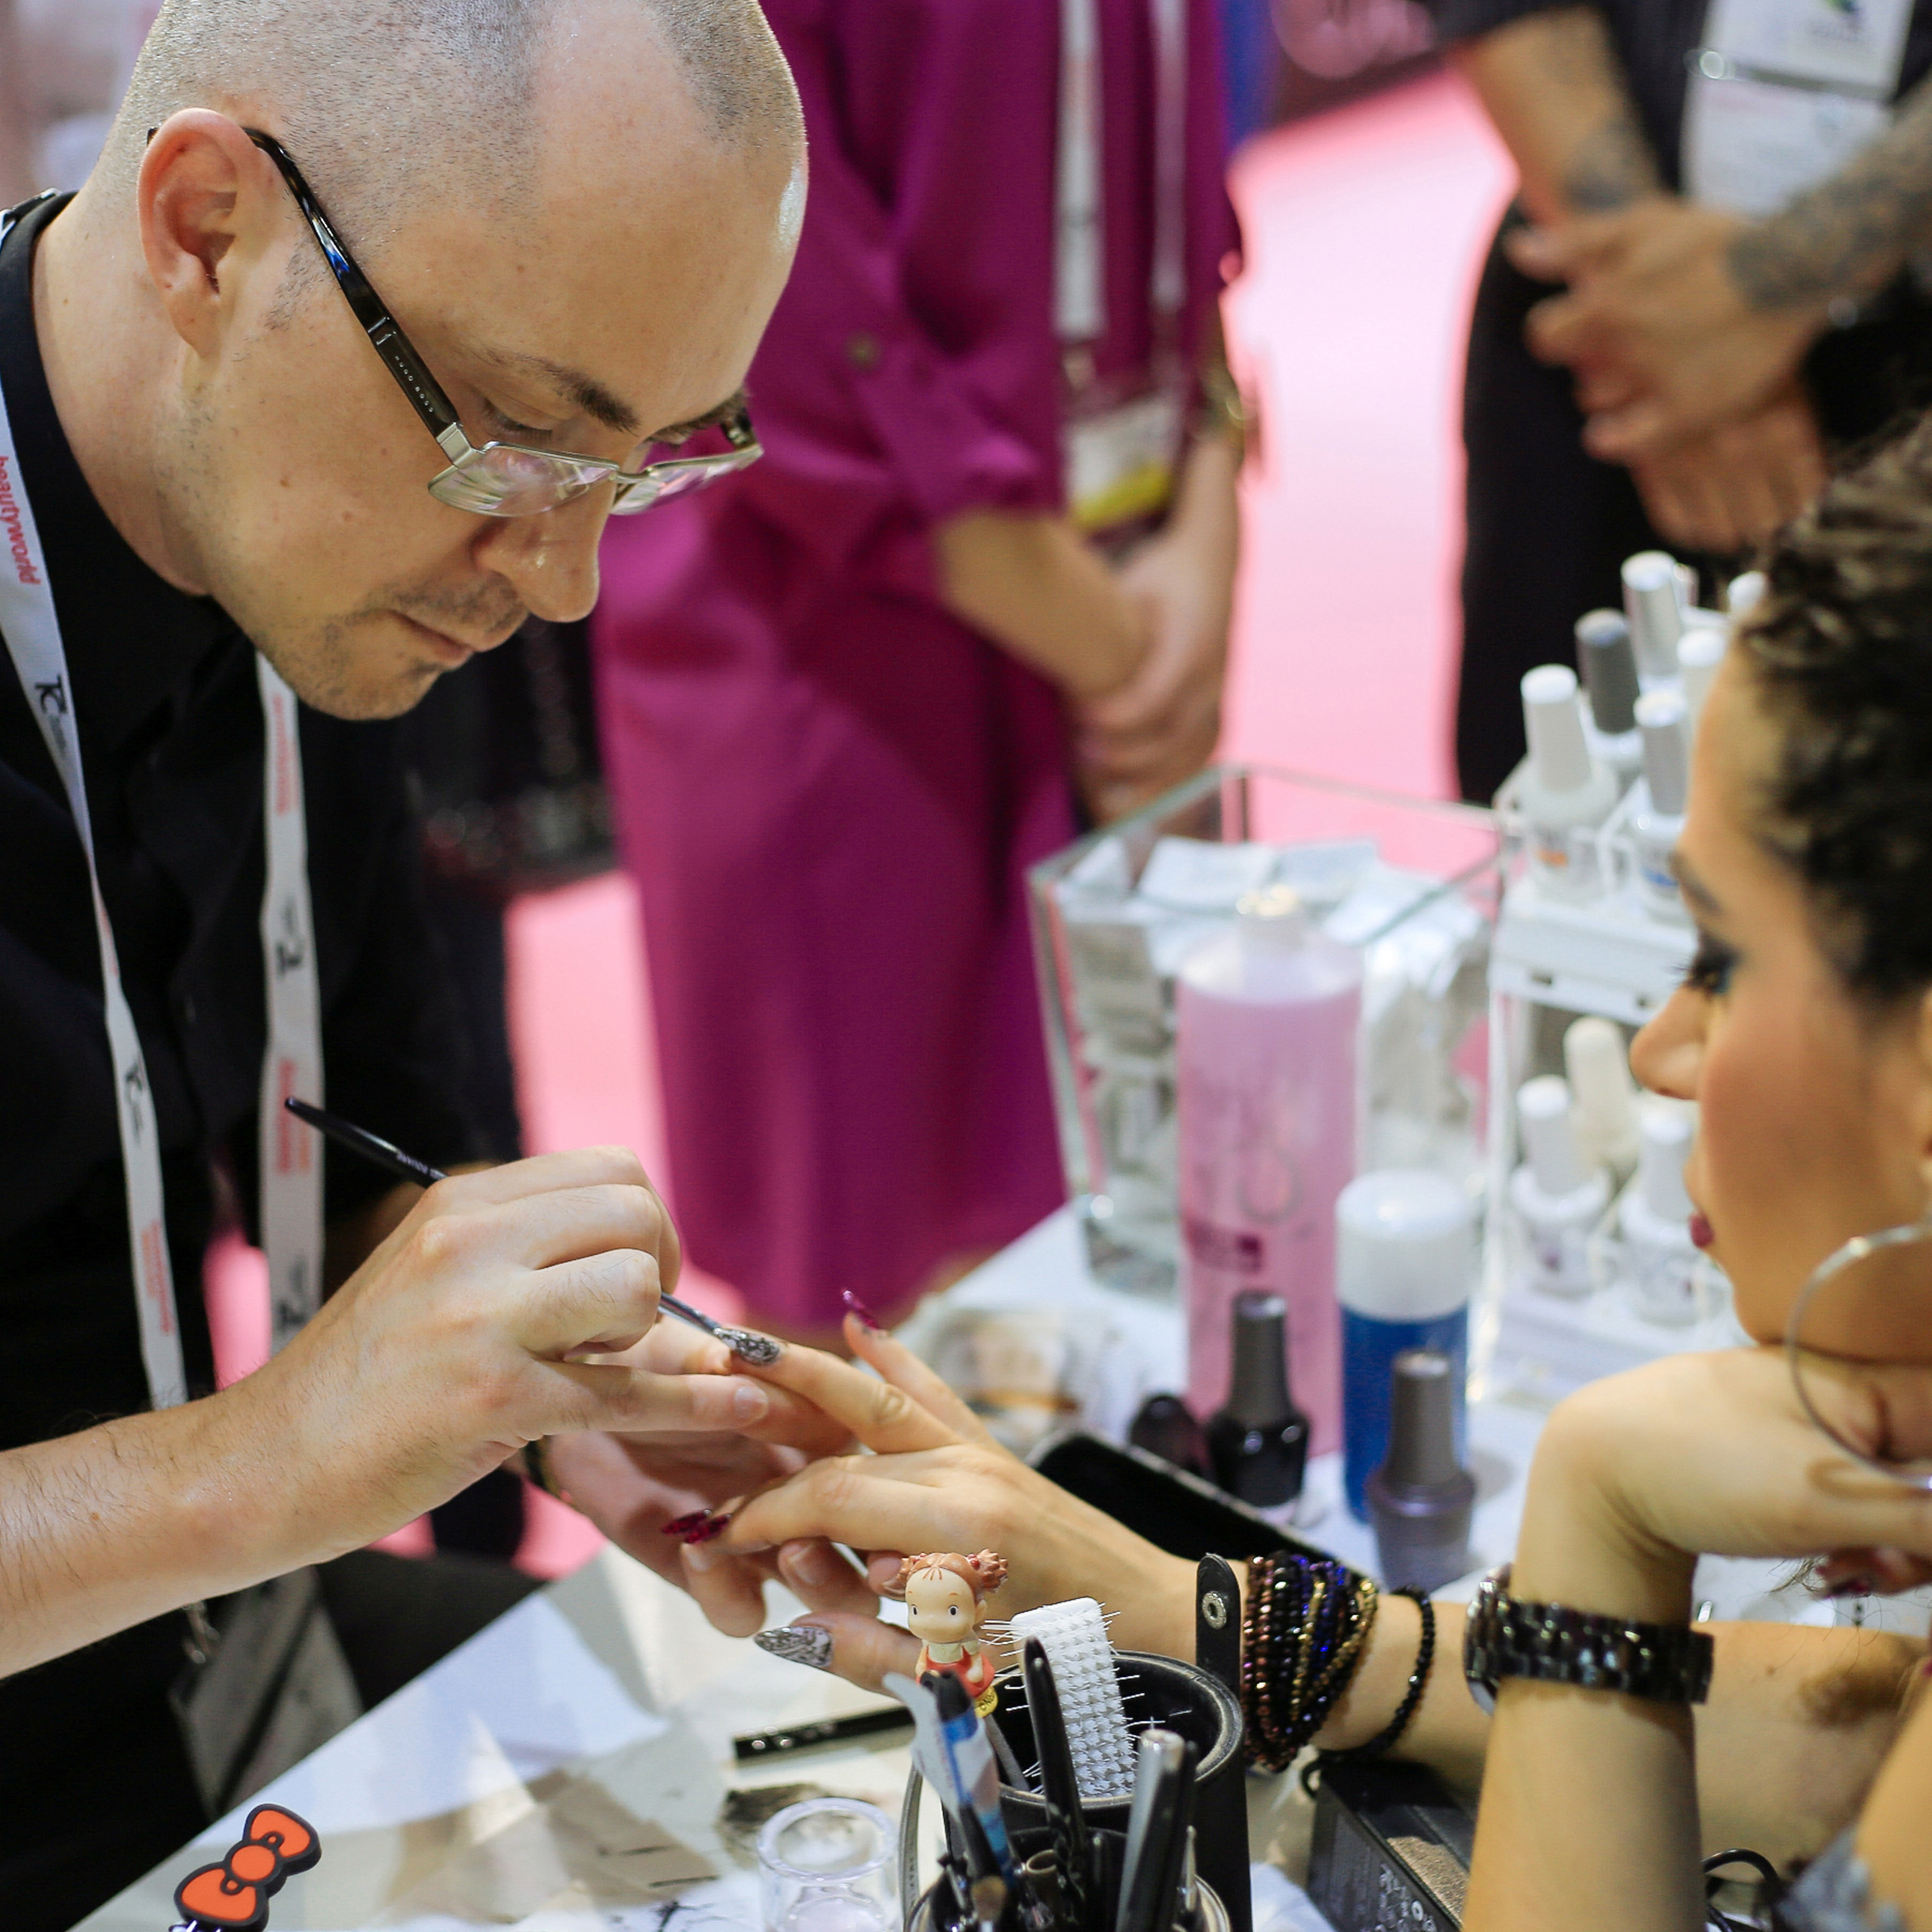 Middle East and African beauty and personal care market to grow to US$34.5 billion by 2021 – Euromonitor